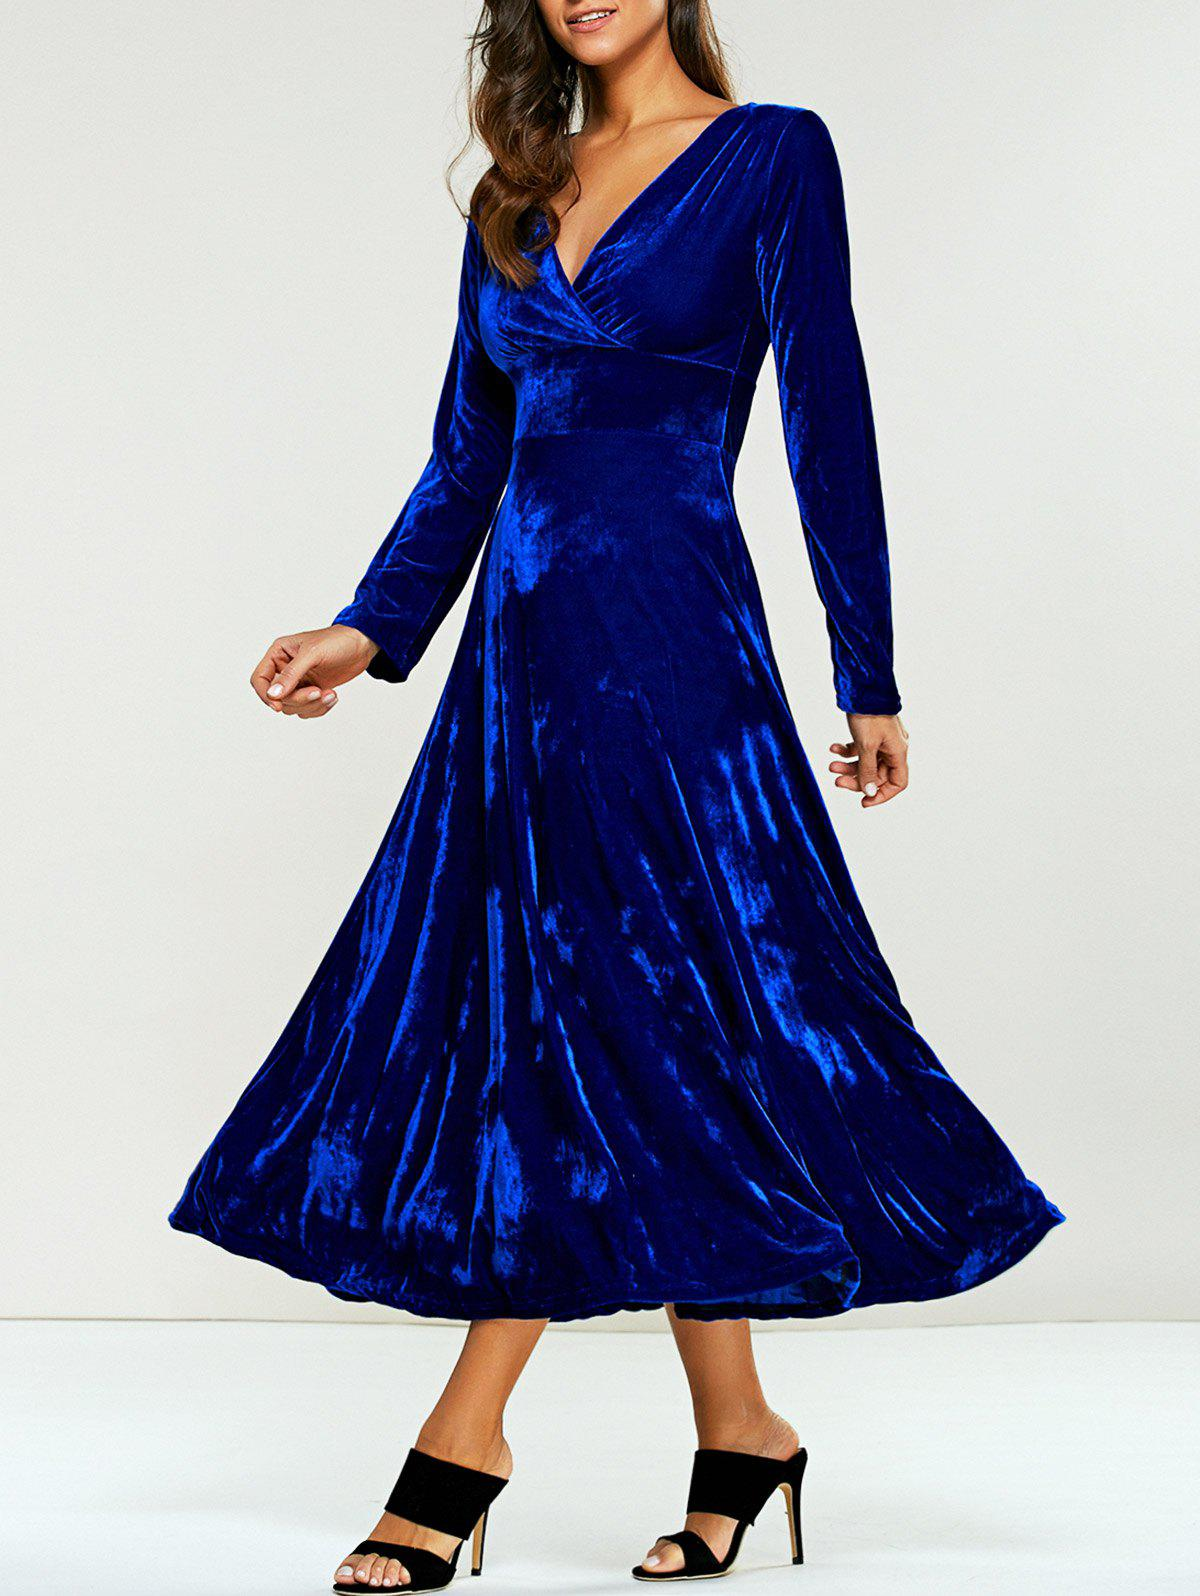 Surplice Velvet Tea Length Long Sleeve DressWOMEN<br><br>Size: 2XL; Color: BLUE; Style: Casual; Material: Polyester; Silhouette: A-Line; Dresses Length: Mid-Calf; Neckline: V-Neck; Sleeve Length: Long Sleeves; Pattern Type: Solid; With Belt: No; Season: Fall,Spring; Weight: 0.570kg; Package Contents: 1 x Dress;